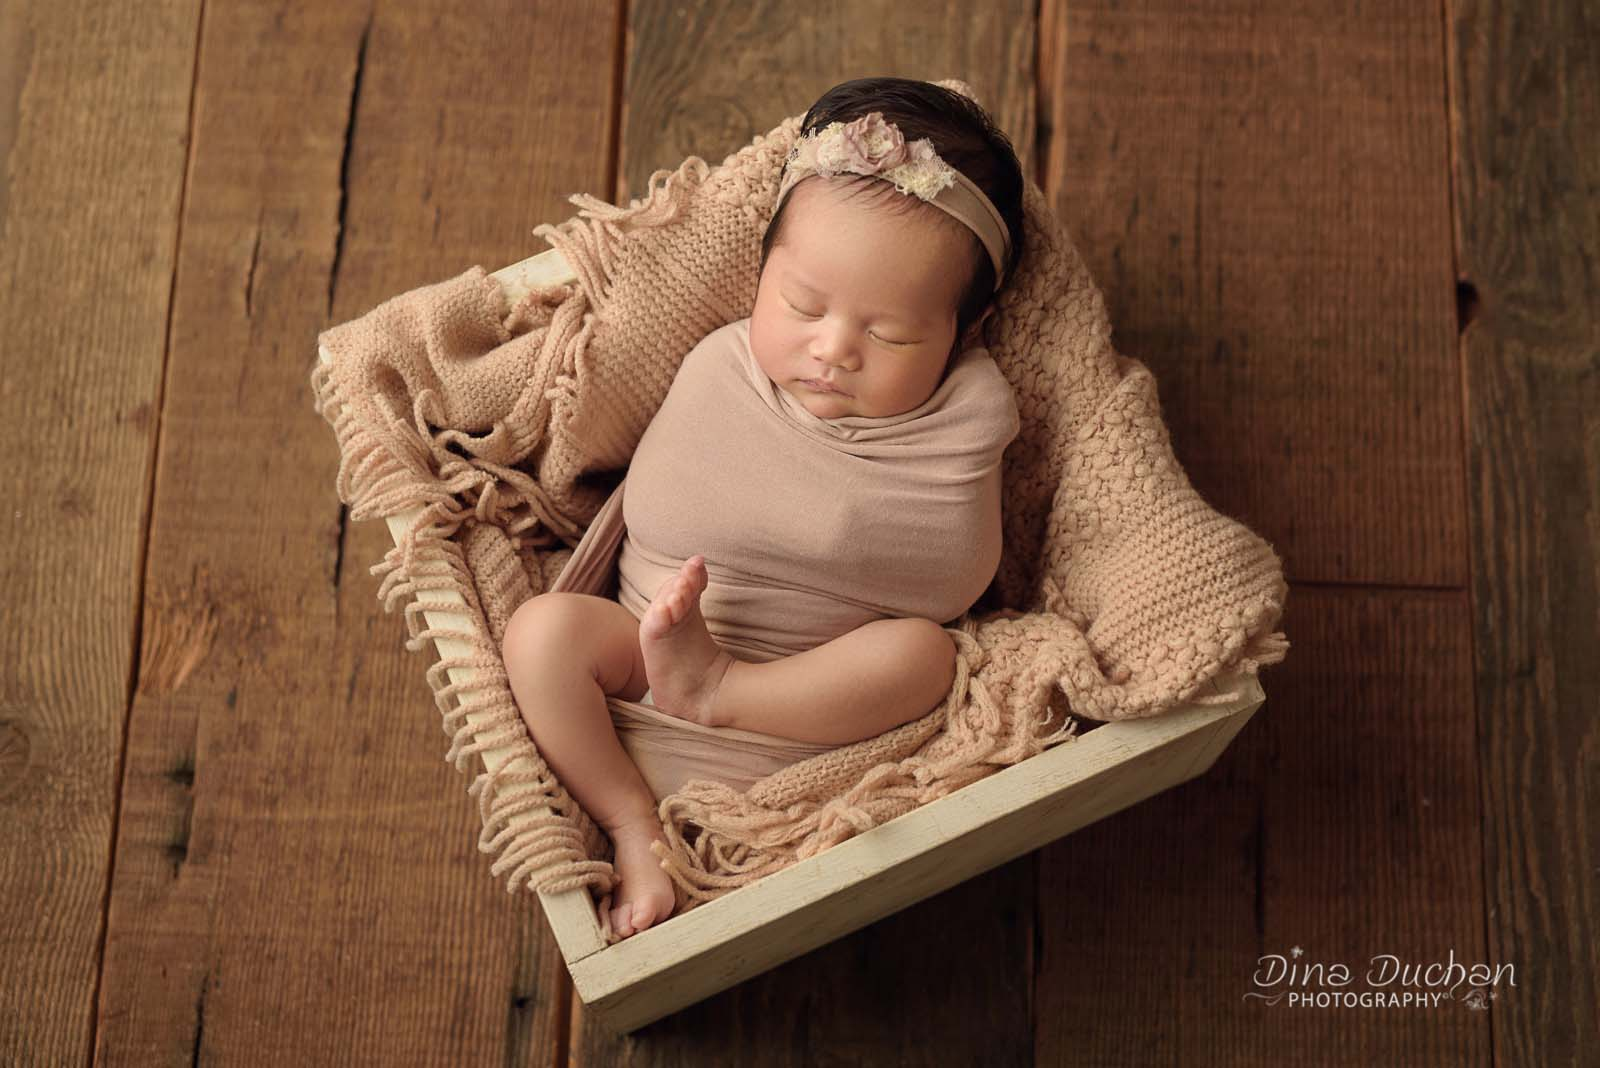 1 Newborn Photography Light Setup